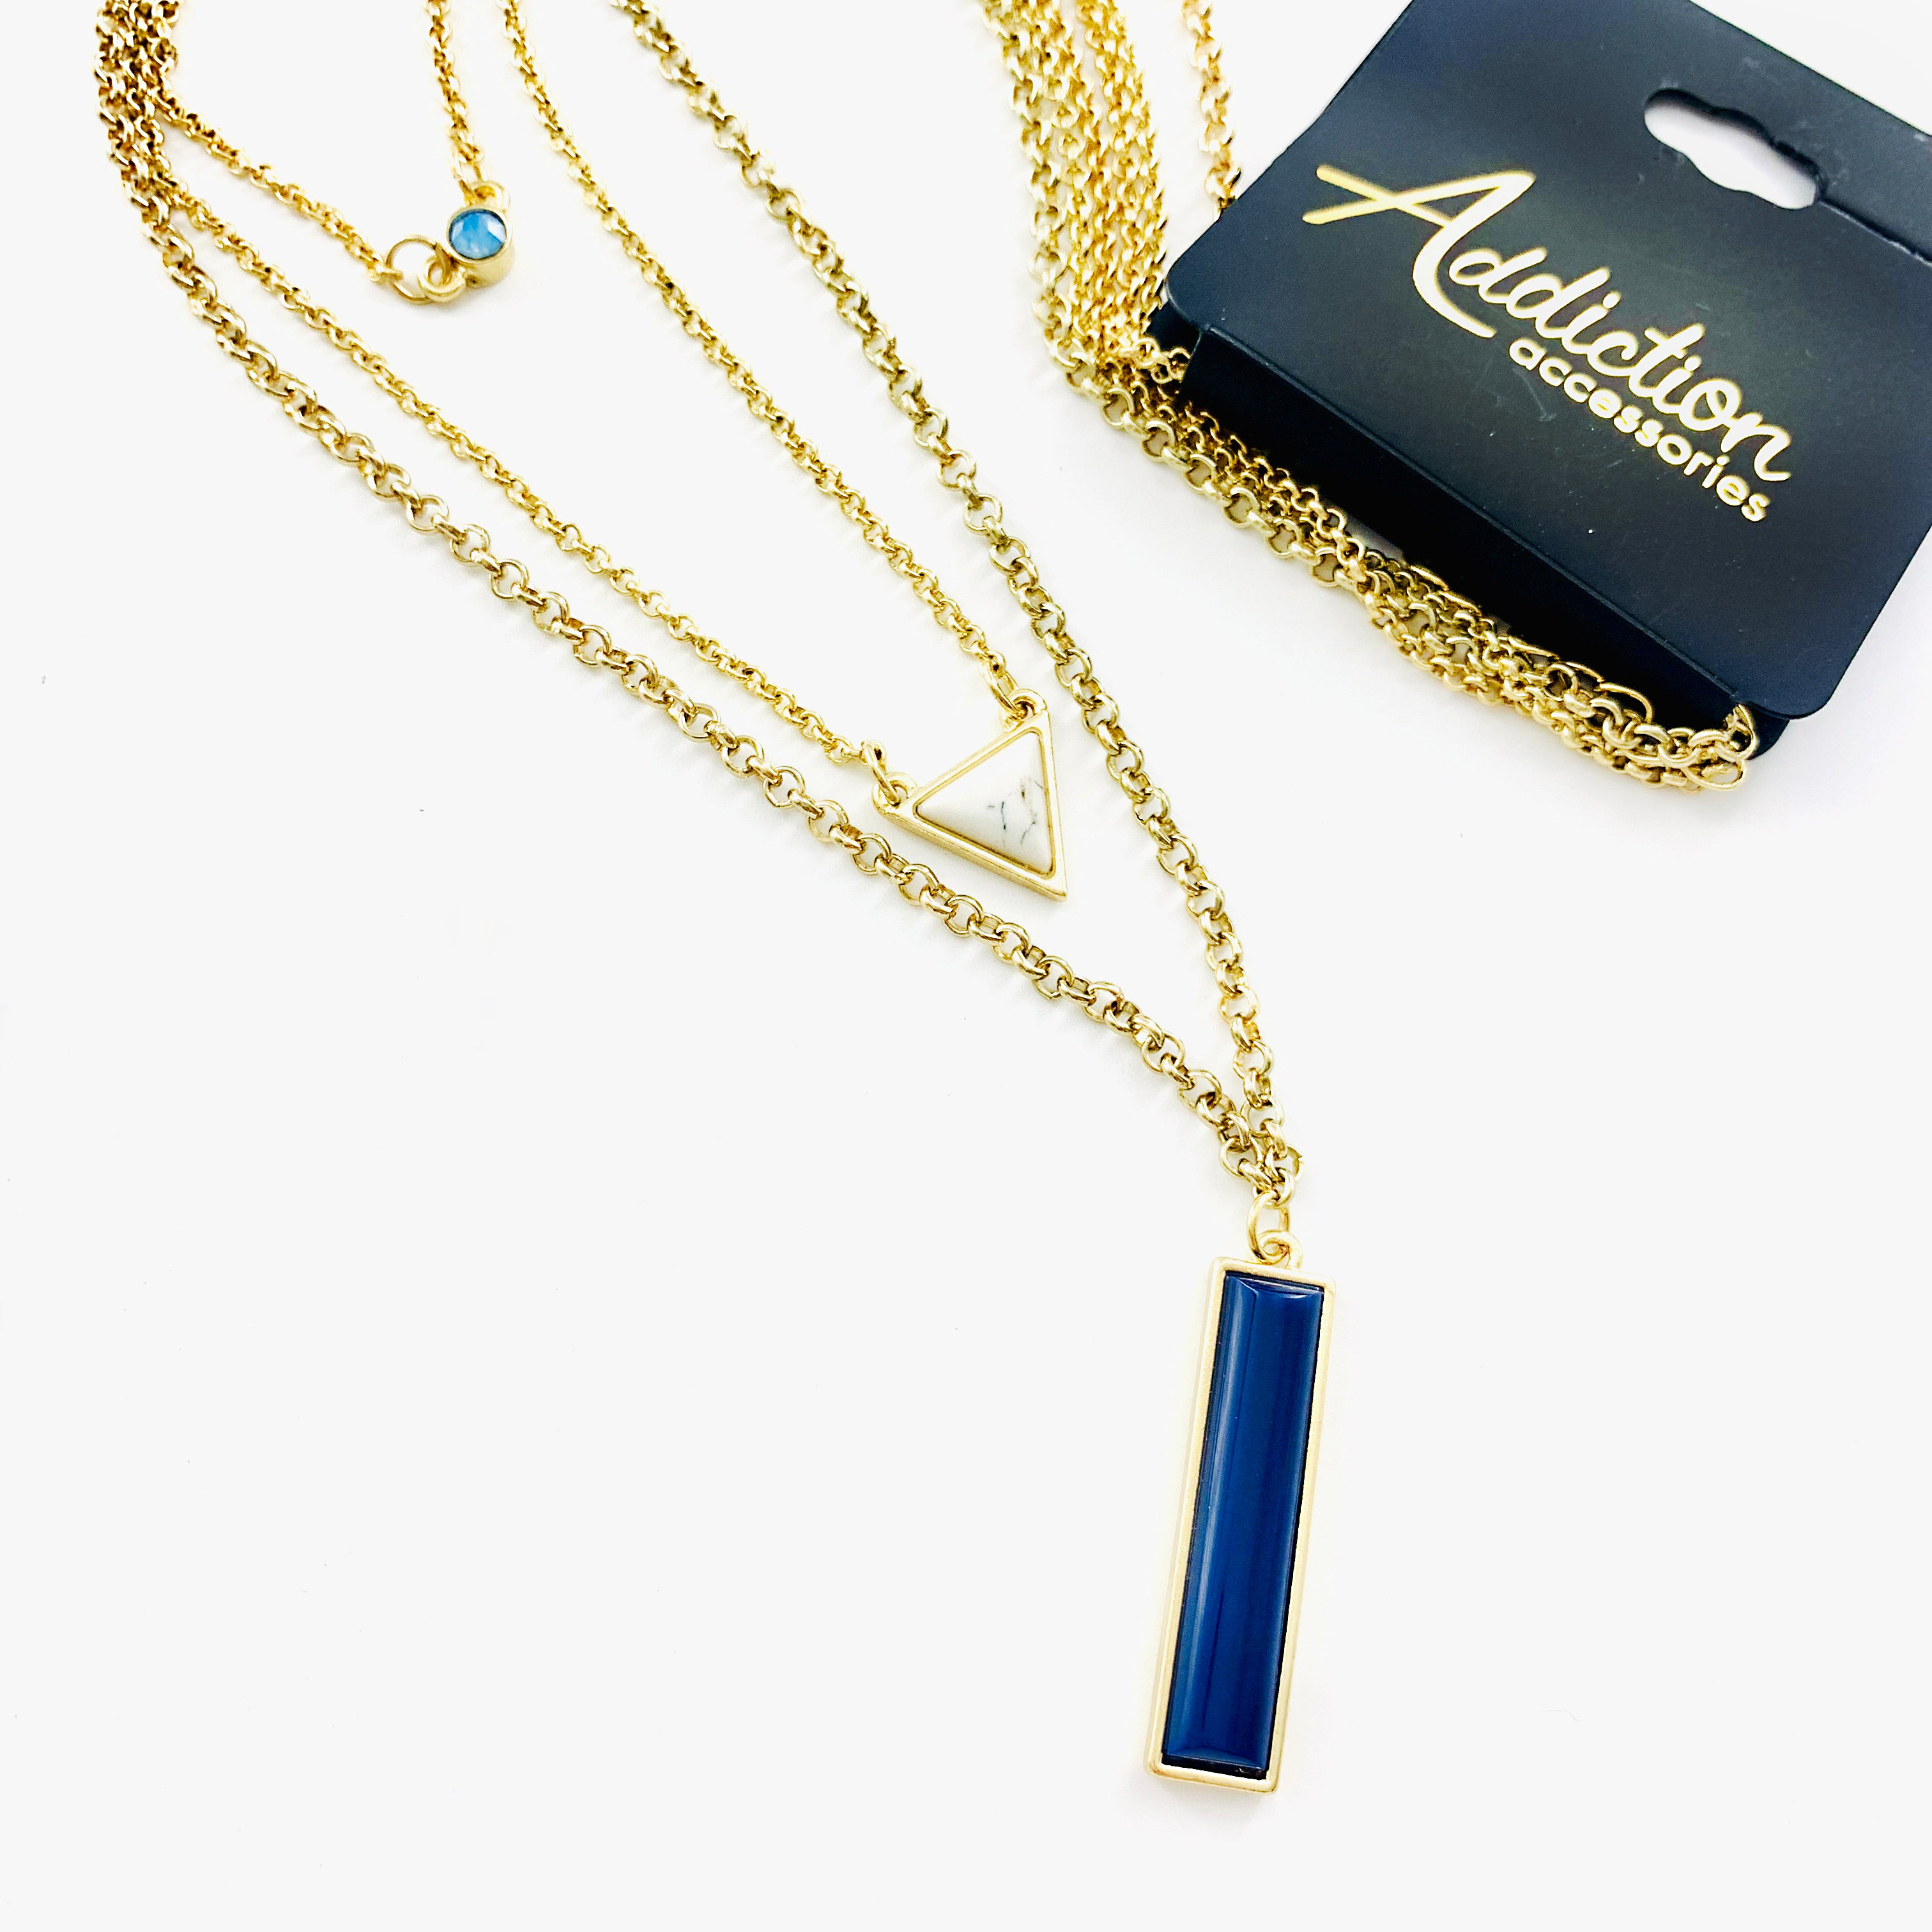 Necklace - Blue Bar and Marble Pendant on Triple Gold Chain